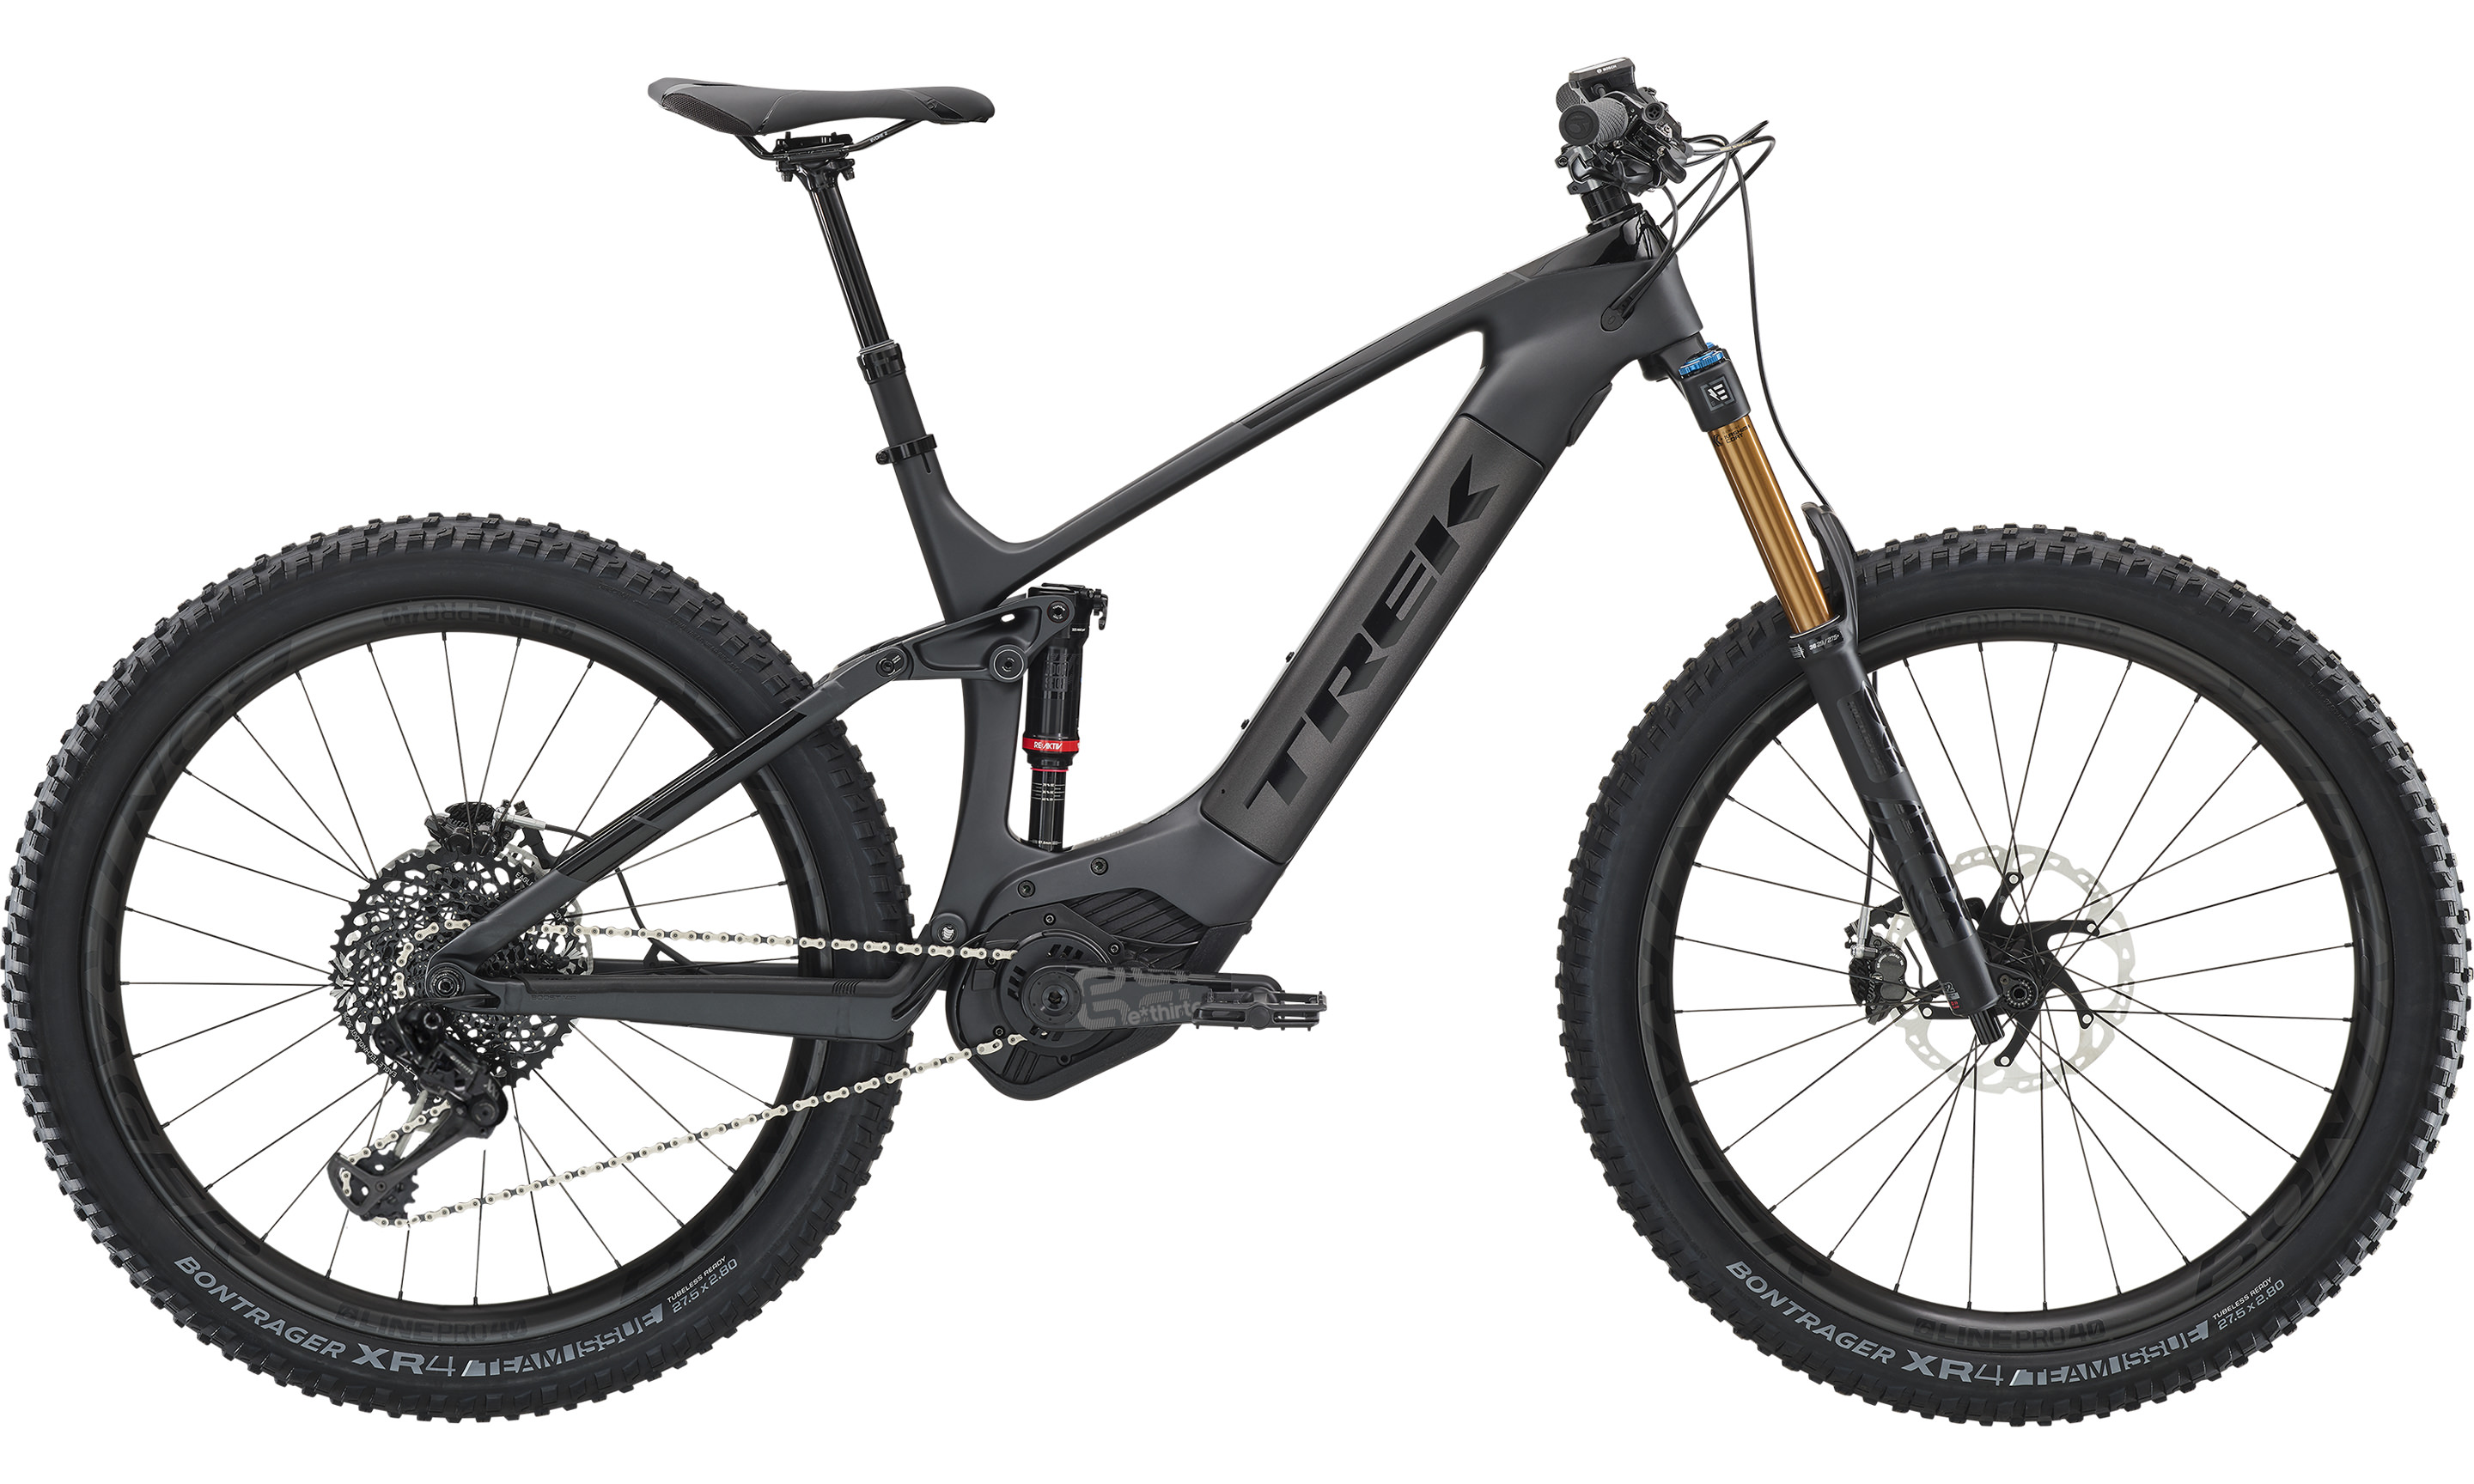 Powerfly LT 9.9 Plus | Bouticycle